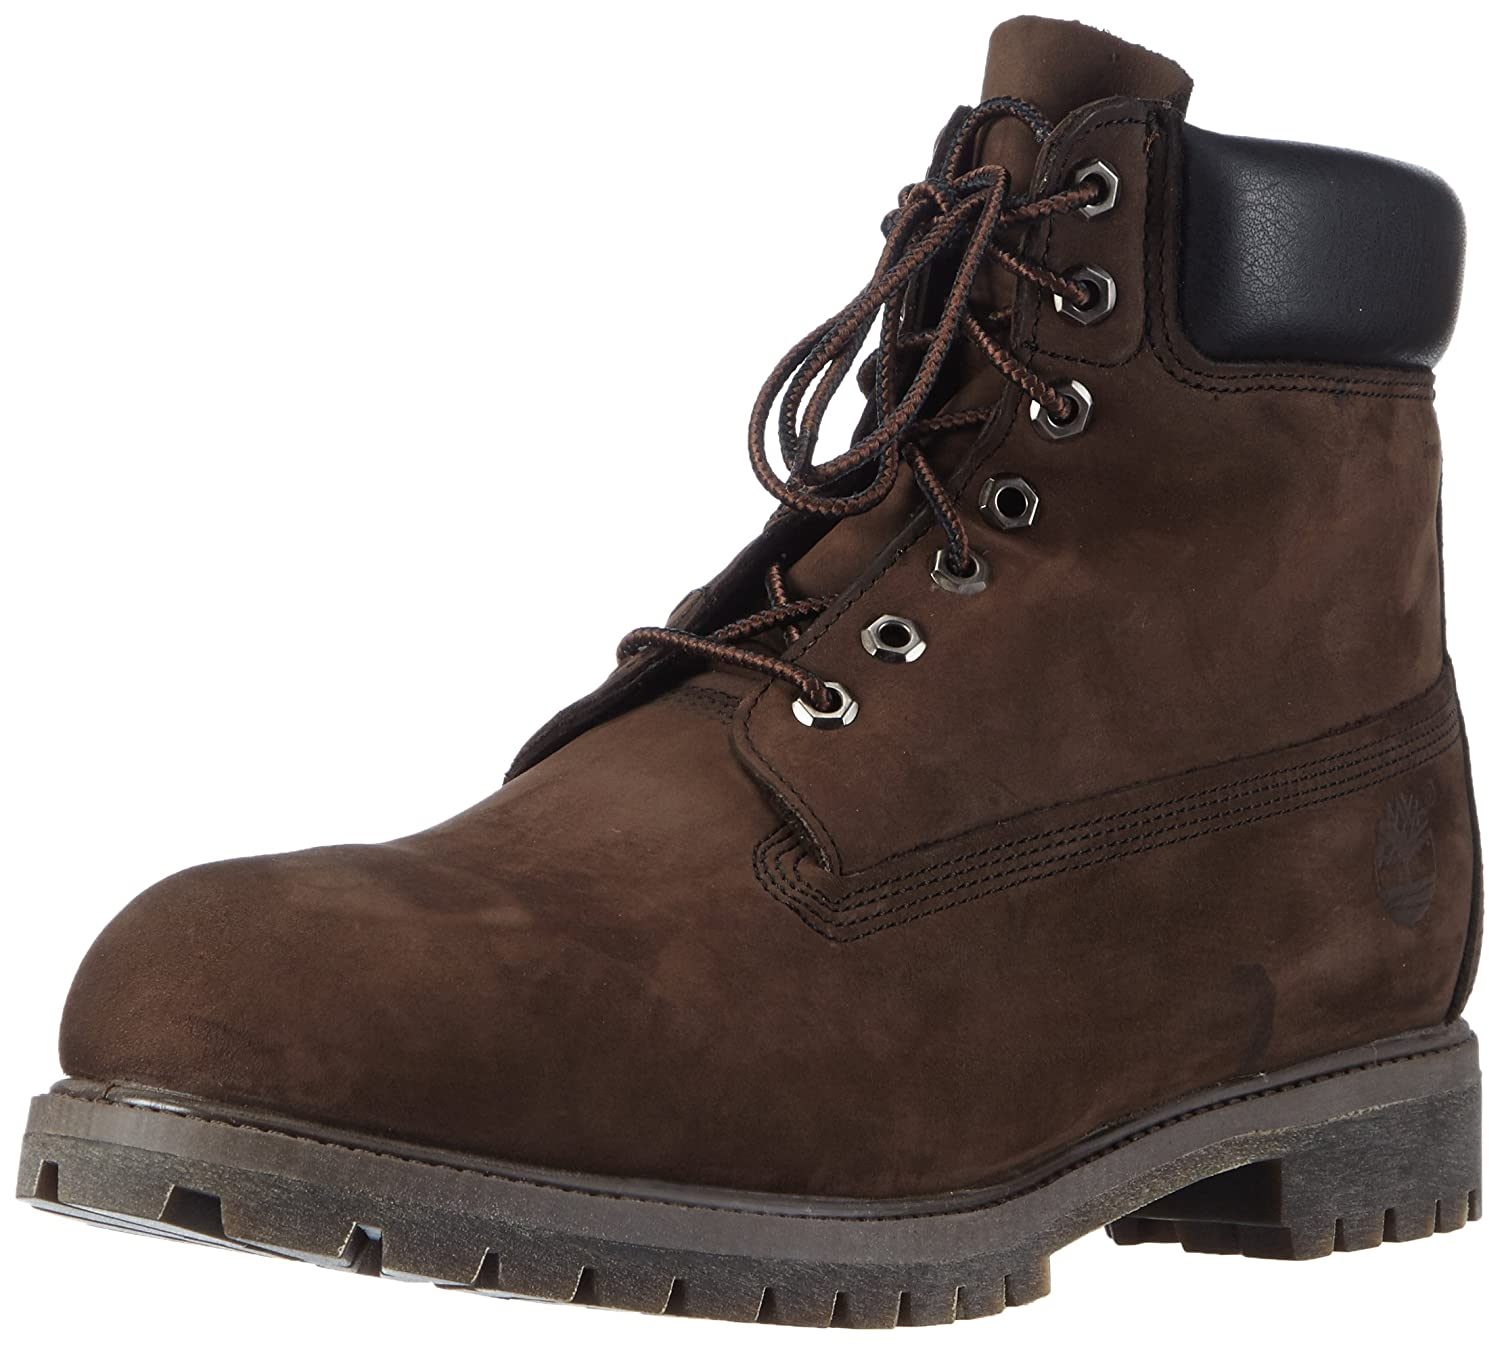 Timberland Premium, 6-inch Brun Premium, Bottes Classiques 19438 Homme Brun (Otter Waterbuck) 28028b9 - automaticcouplings.space